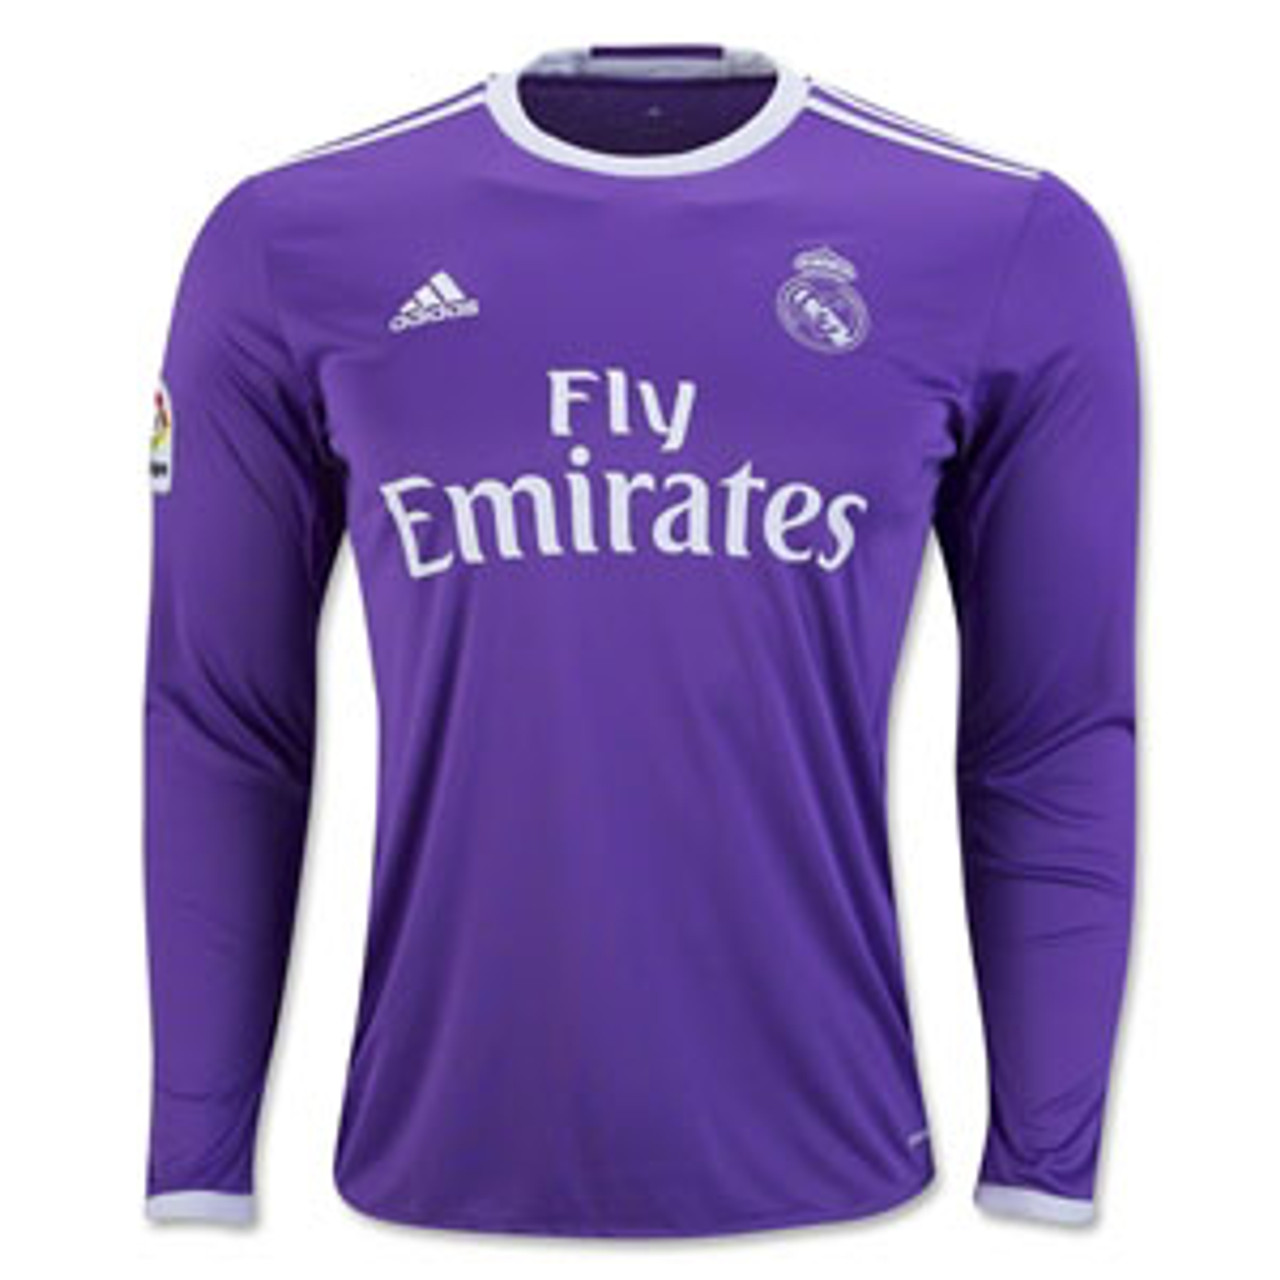 sports shoes 87d06 b7463 ADIDAS REAL MADRID 2017 AWAY L/S PURPLE JERSEY